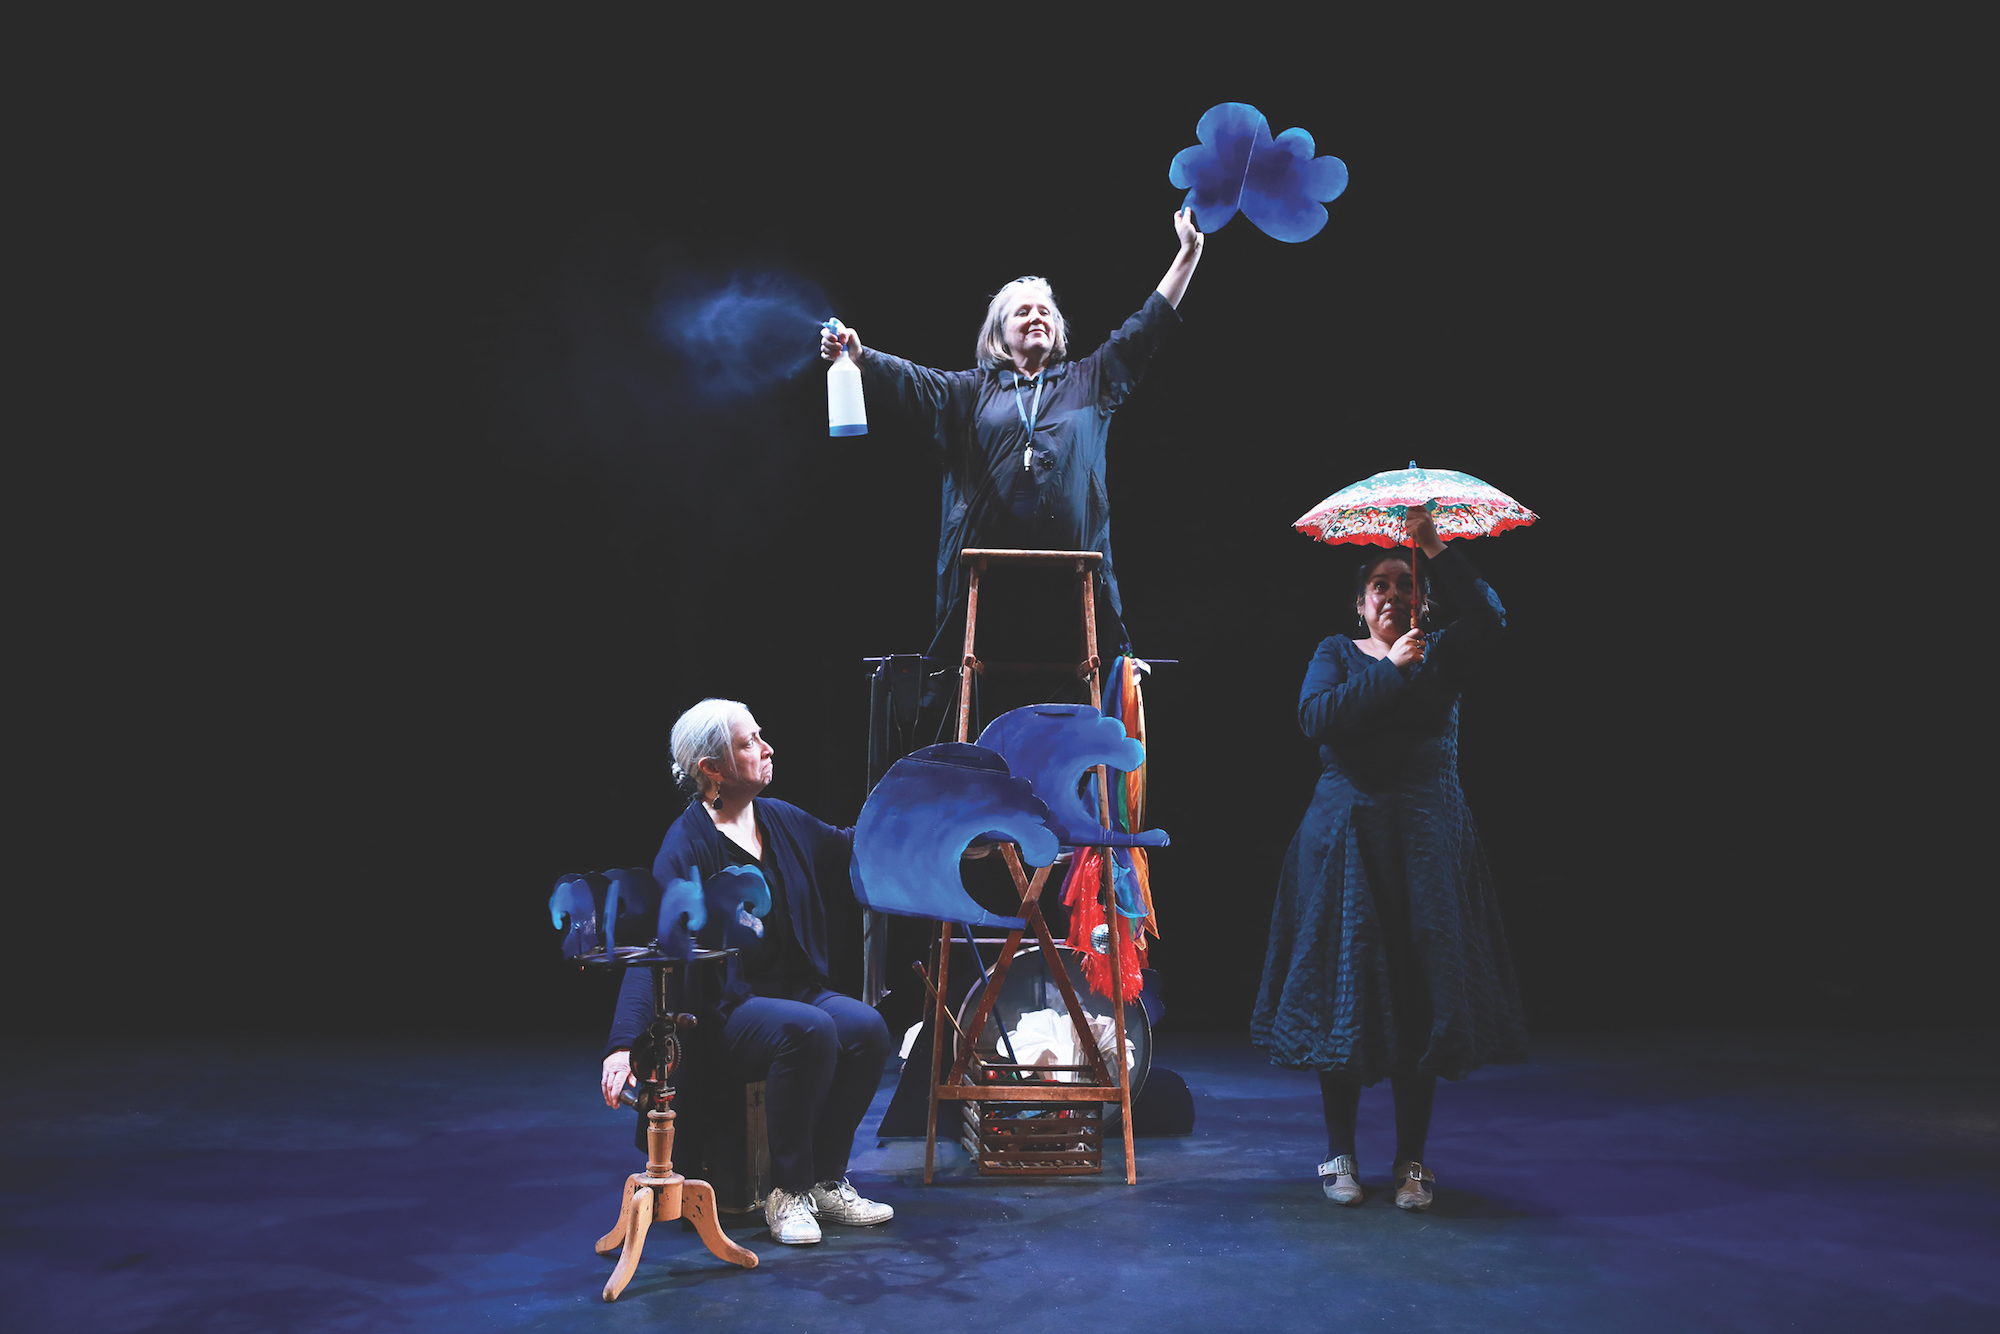 The performer on the left is holding a stand and props that look like blue waves. The one in the middle is standing on a wooden ladder, holding a blue cloud and a spray bottle. The one on the right is holding a parasol over their head.